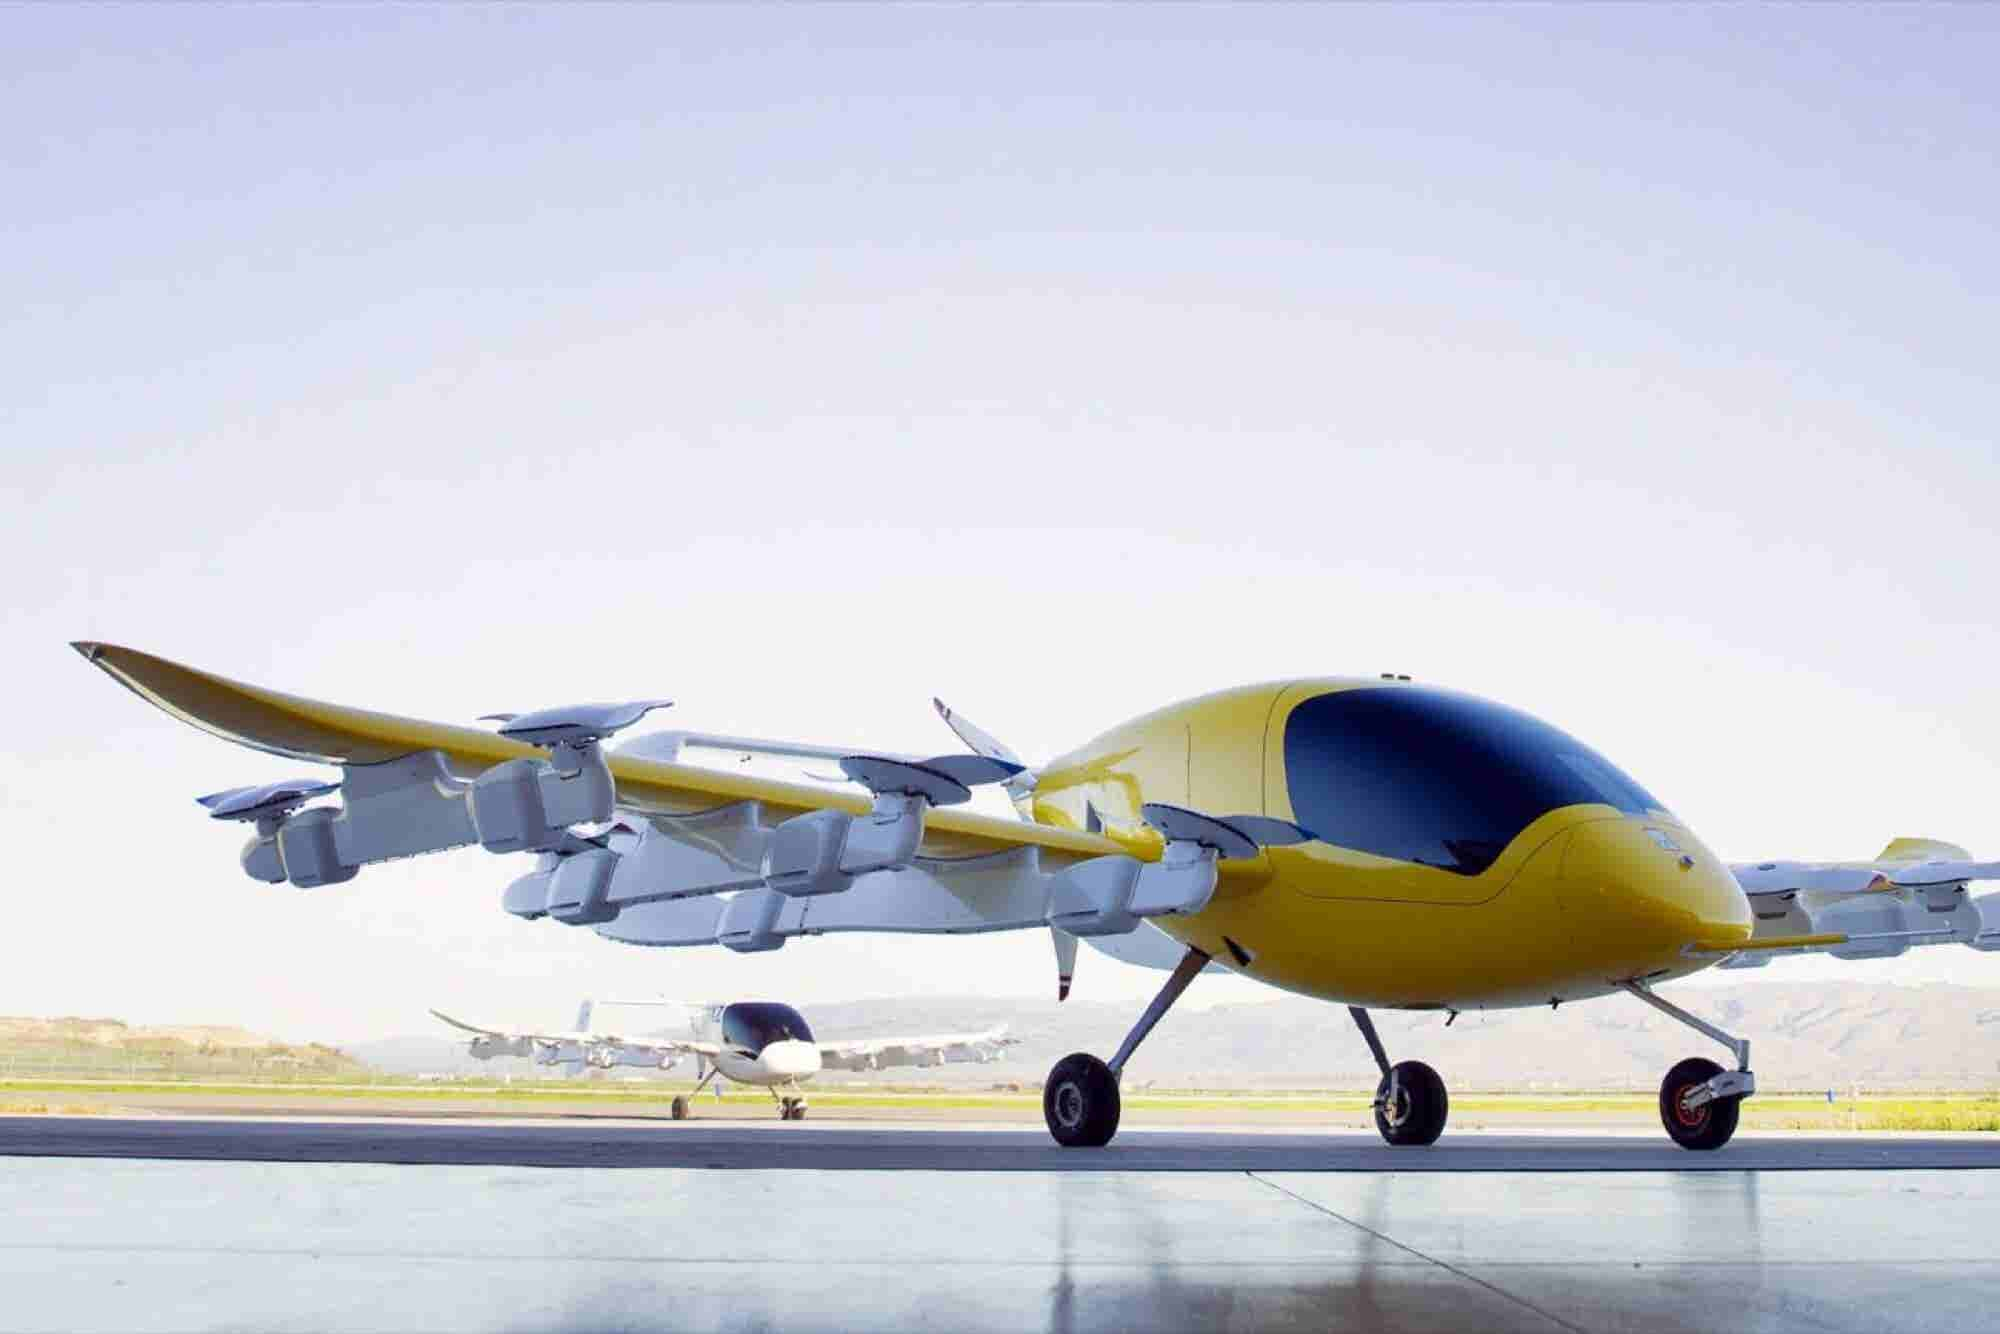 Google Co-Founder Larry Page's Air Taxi Takes Flight